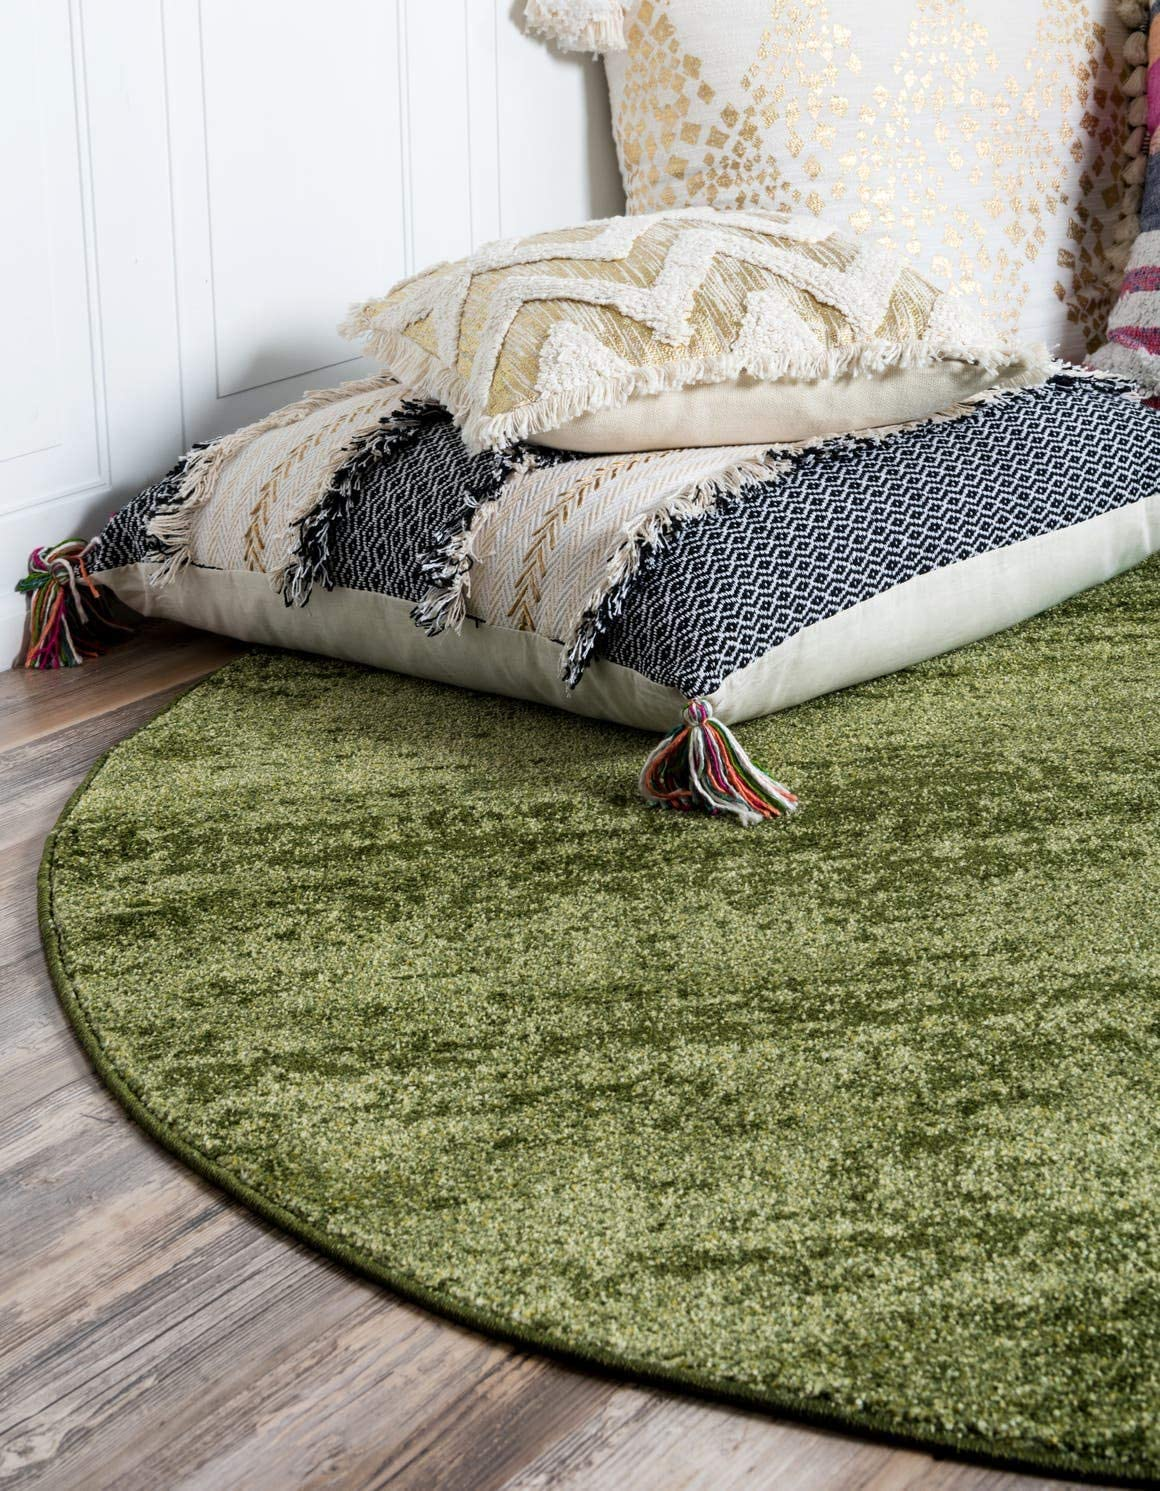 Unique Loom Del Mar Collection Contemporary Transitional Green Round Rug 6 0 x 6 0